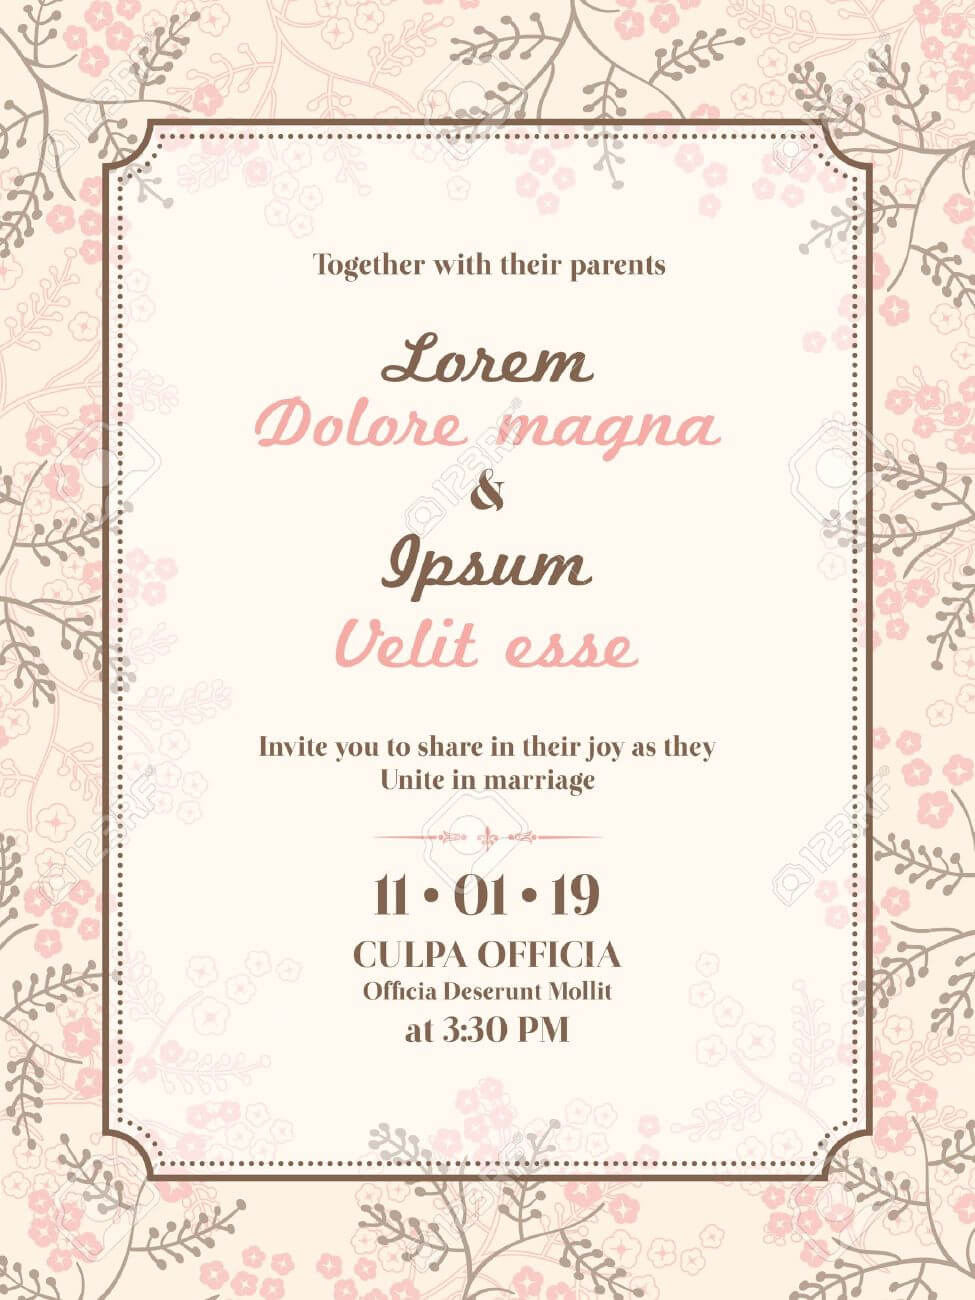 Wedding Invitation Card Template Pertaining To Invitation Cards Templates For Marriage